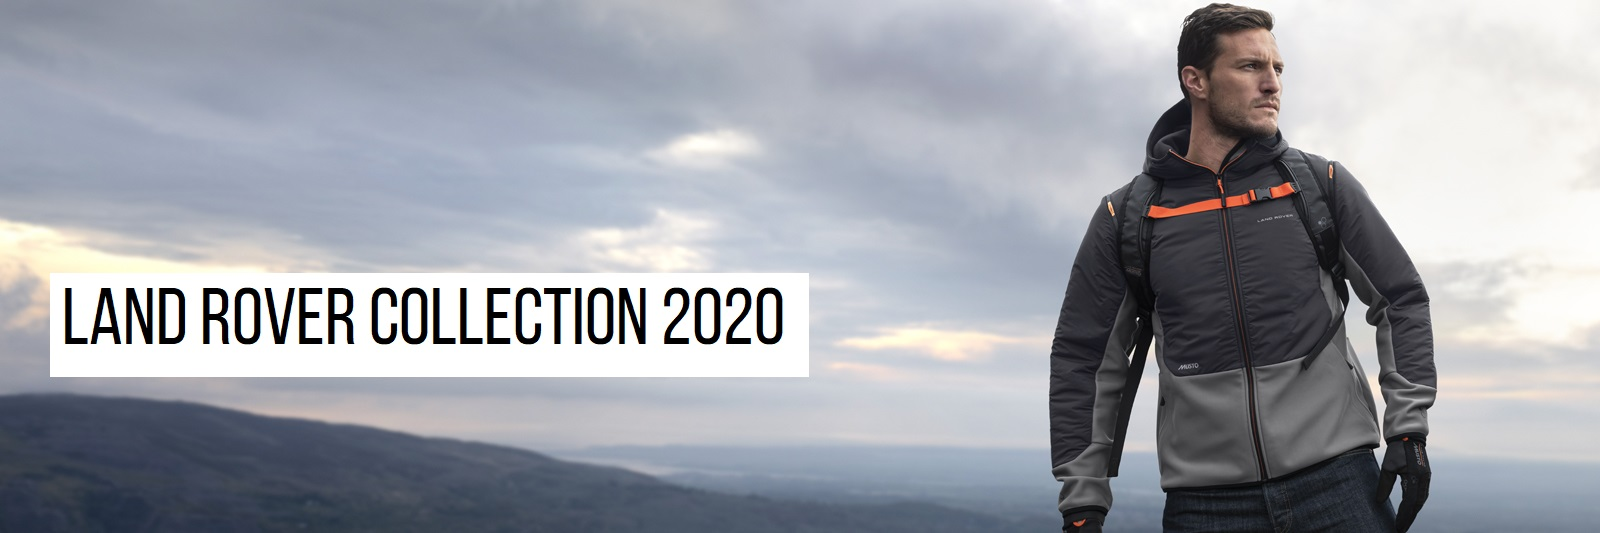 LR Collection 2020